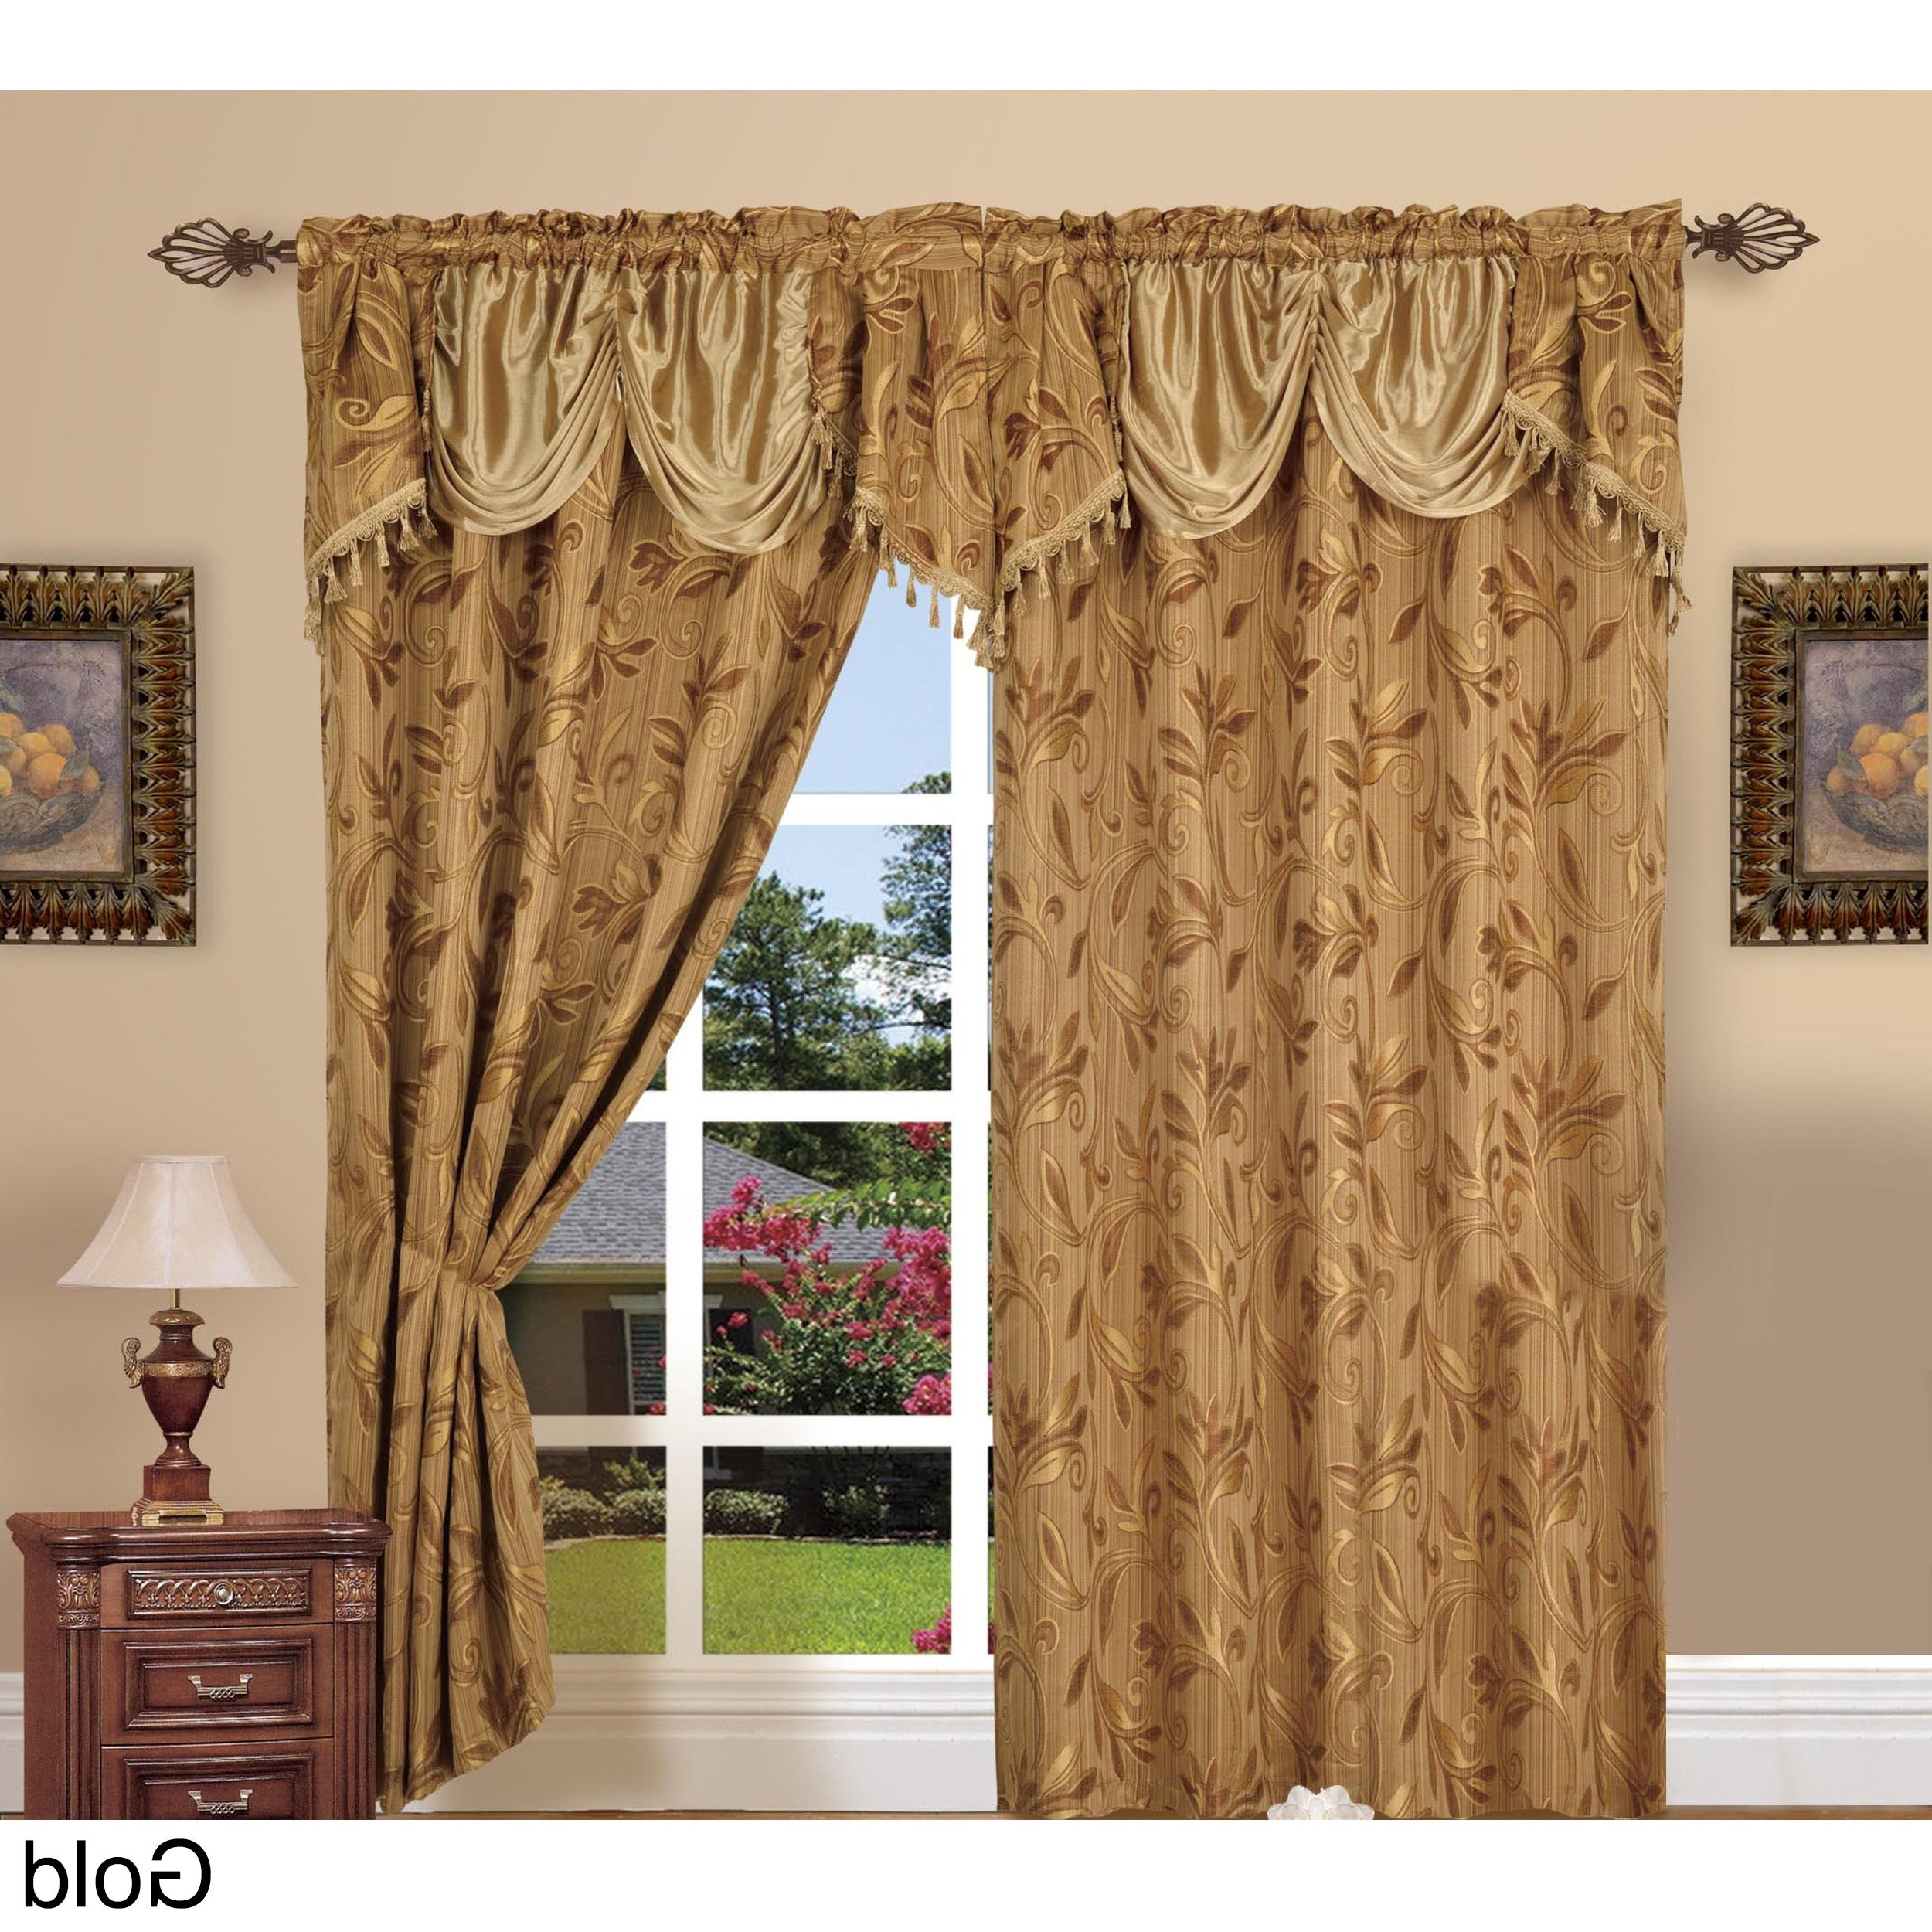 Newest Elegant Comfort Luxury Penelopie Jacquard Window Curtain Panel Pairs Intended For Elegant Comfort Luxury Jacquard Rod Pocket 54 Inch Window Curtain Panel Pair (View 4 of 20)